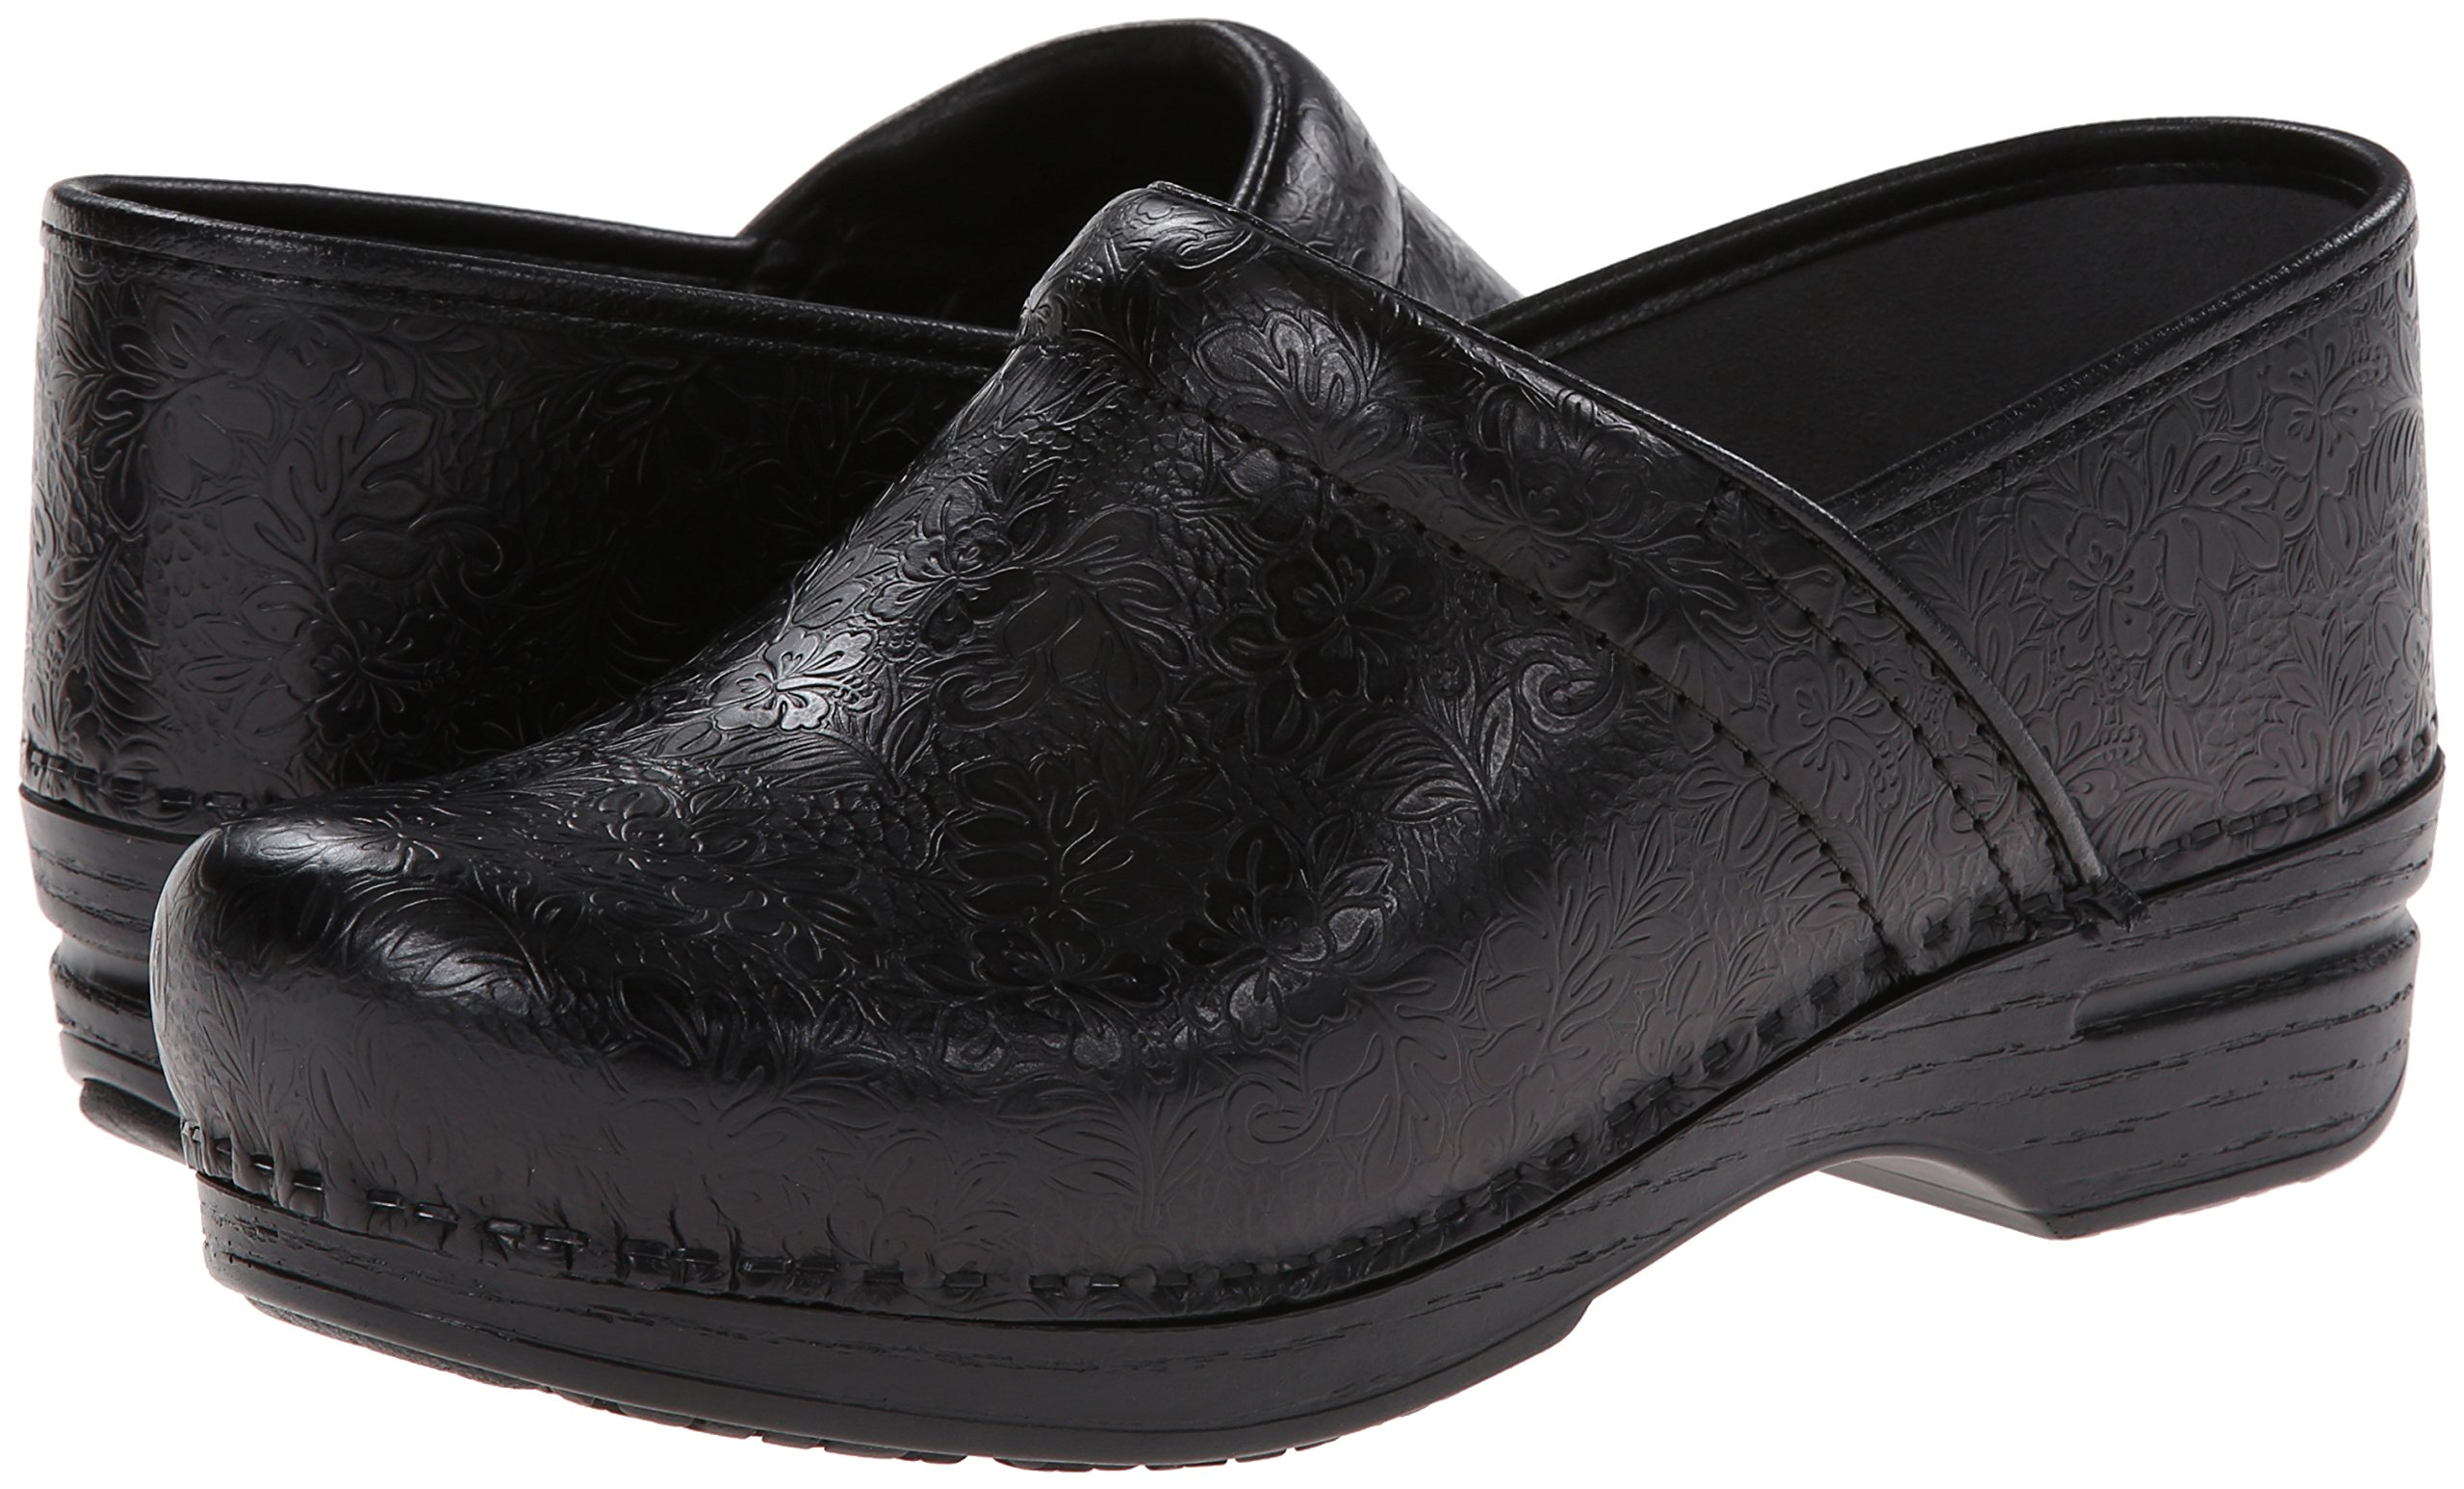 Dansko Women's Pro XP Mule,Black Floral Tooled,39 EU/8.5-9 M US by Dansko (Image #6)